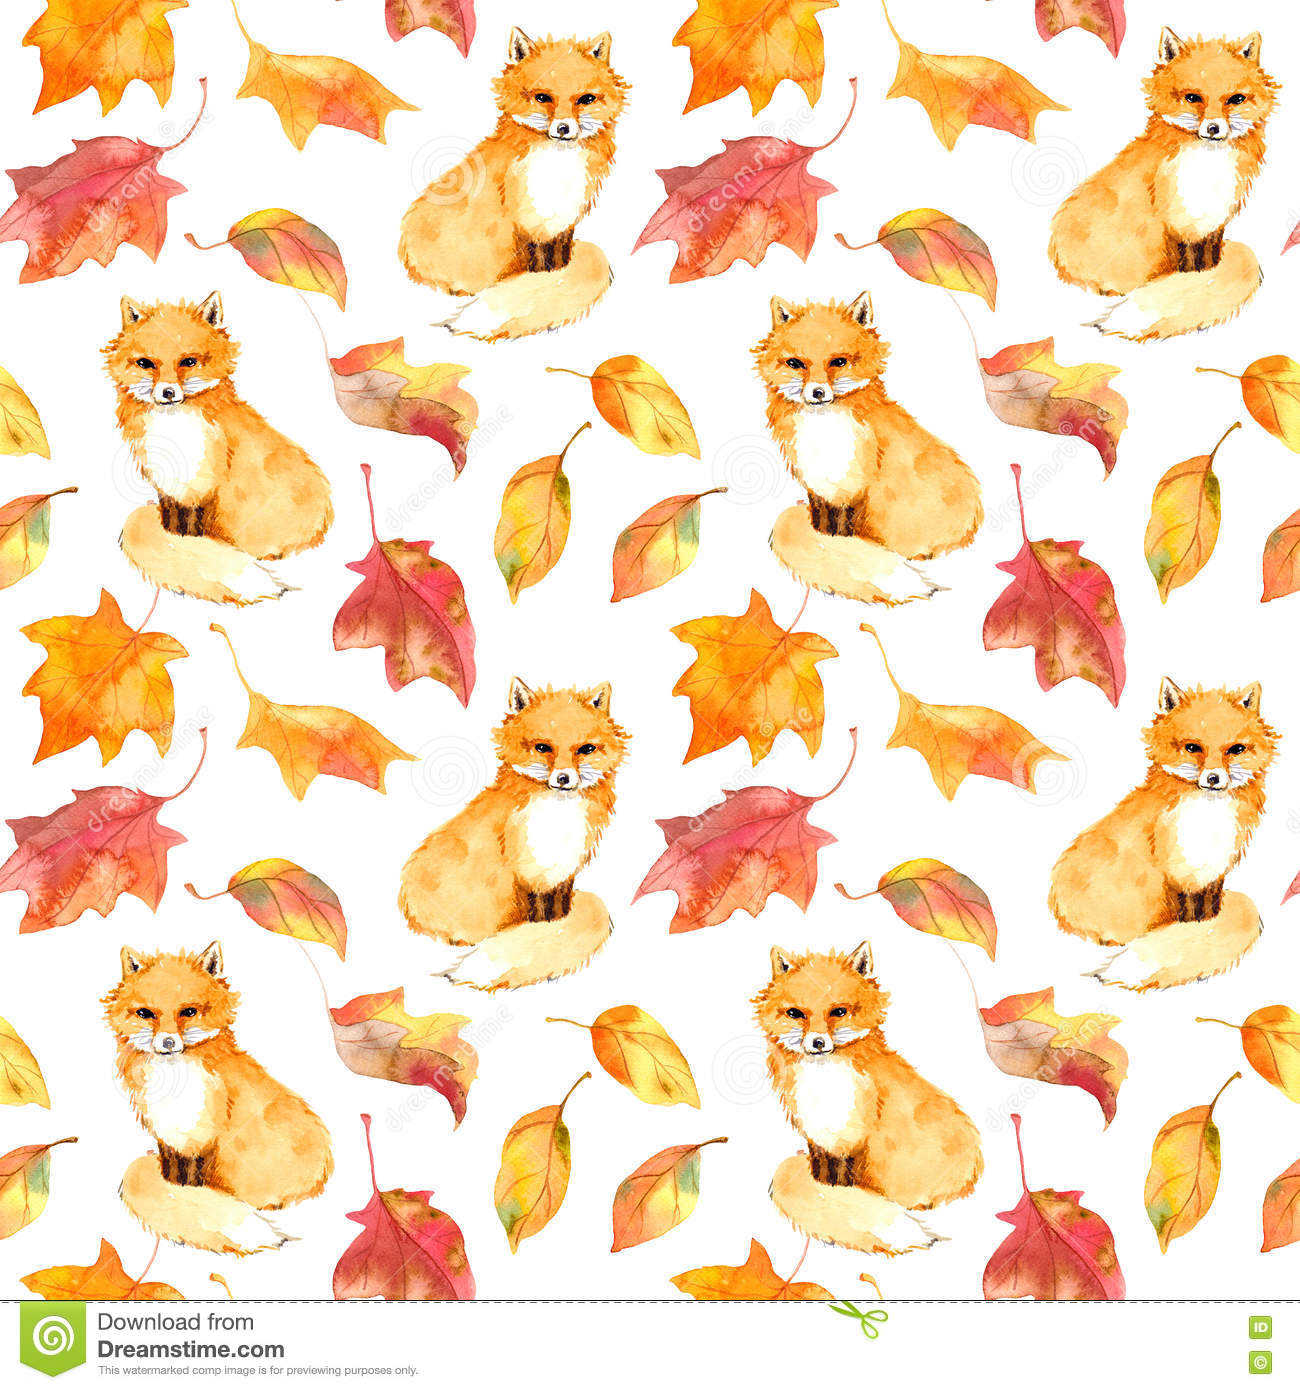 Cute Rustic Fall Wallpapers For Laptop Autumn Pattern Cute Fox Animal Red Leaves Seamless